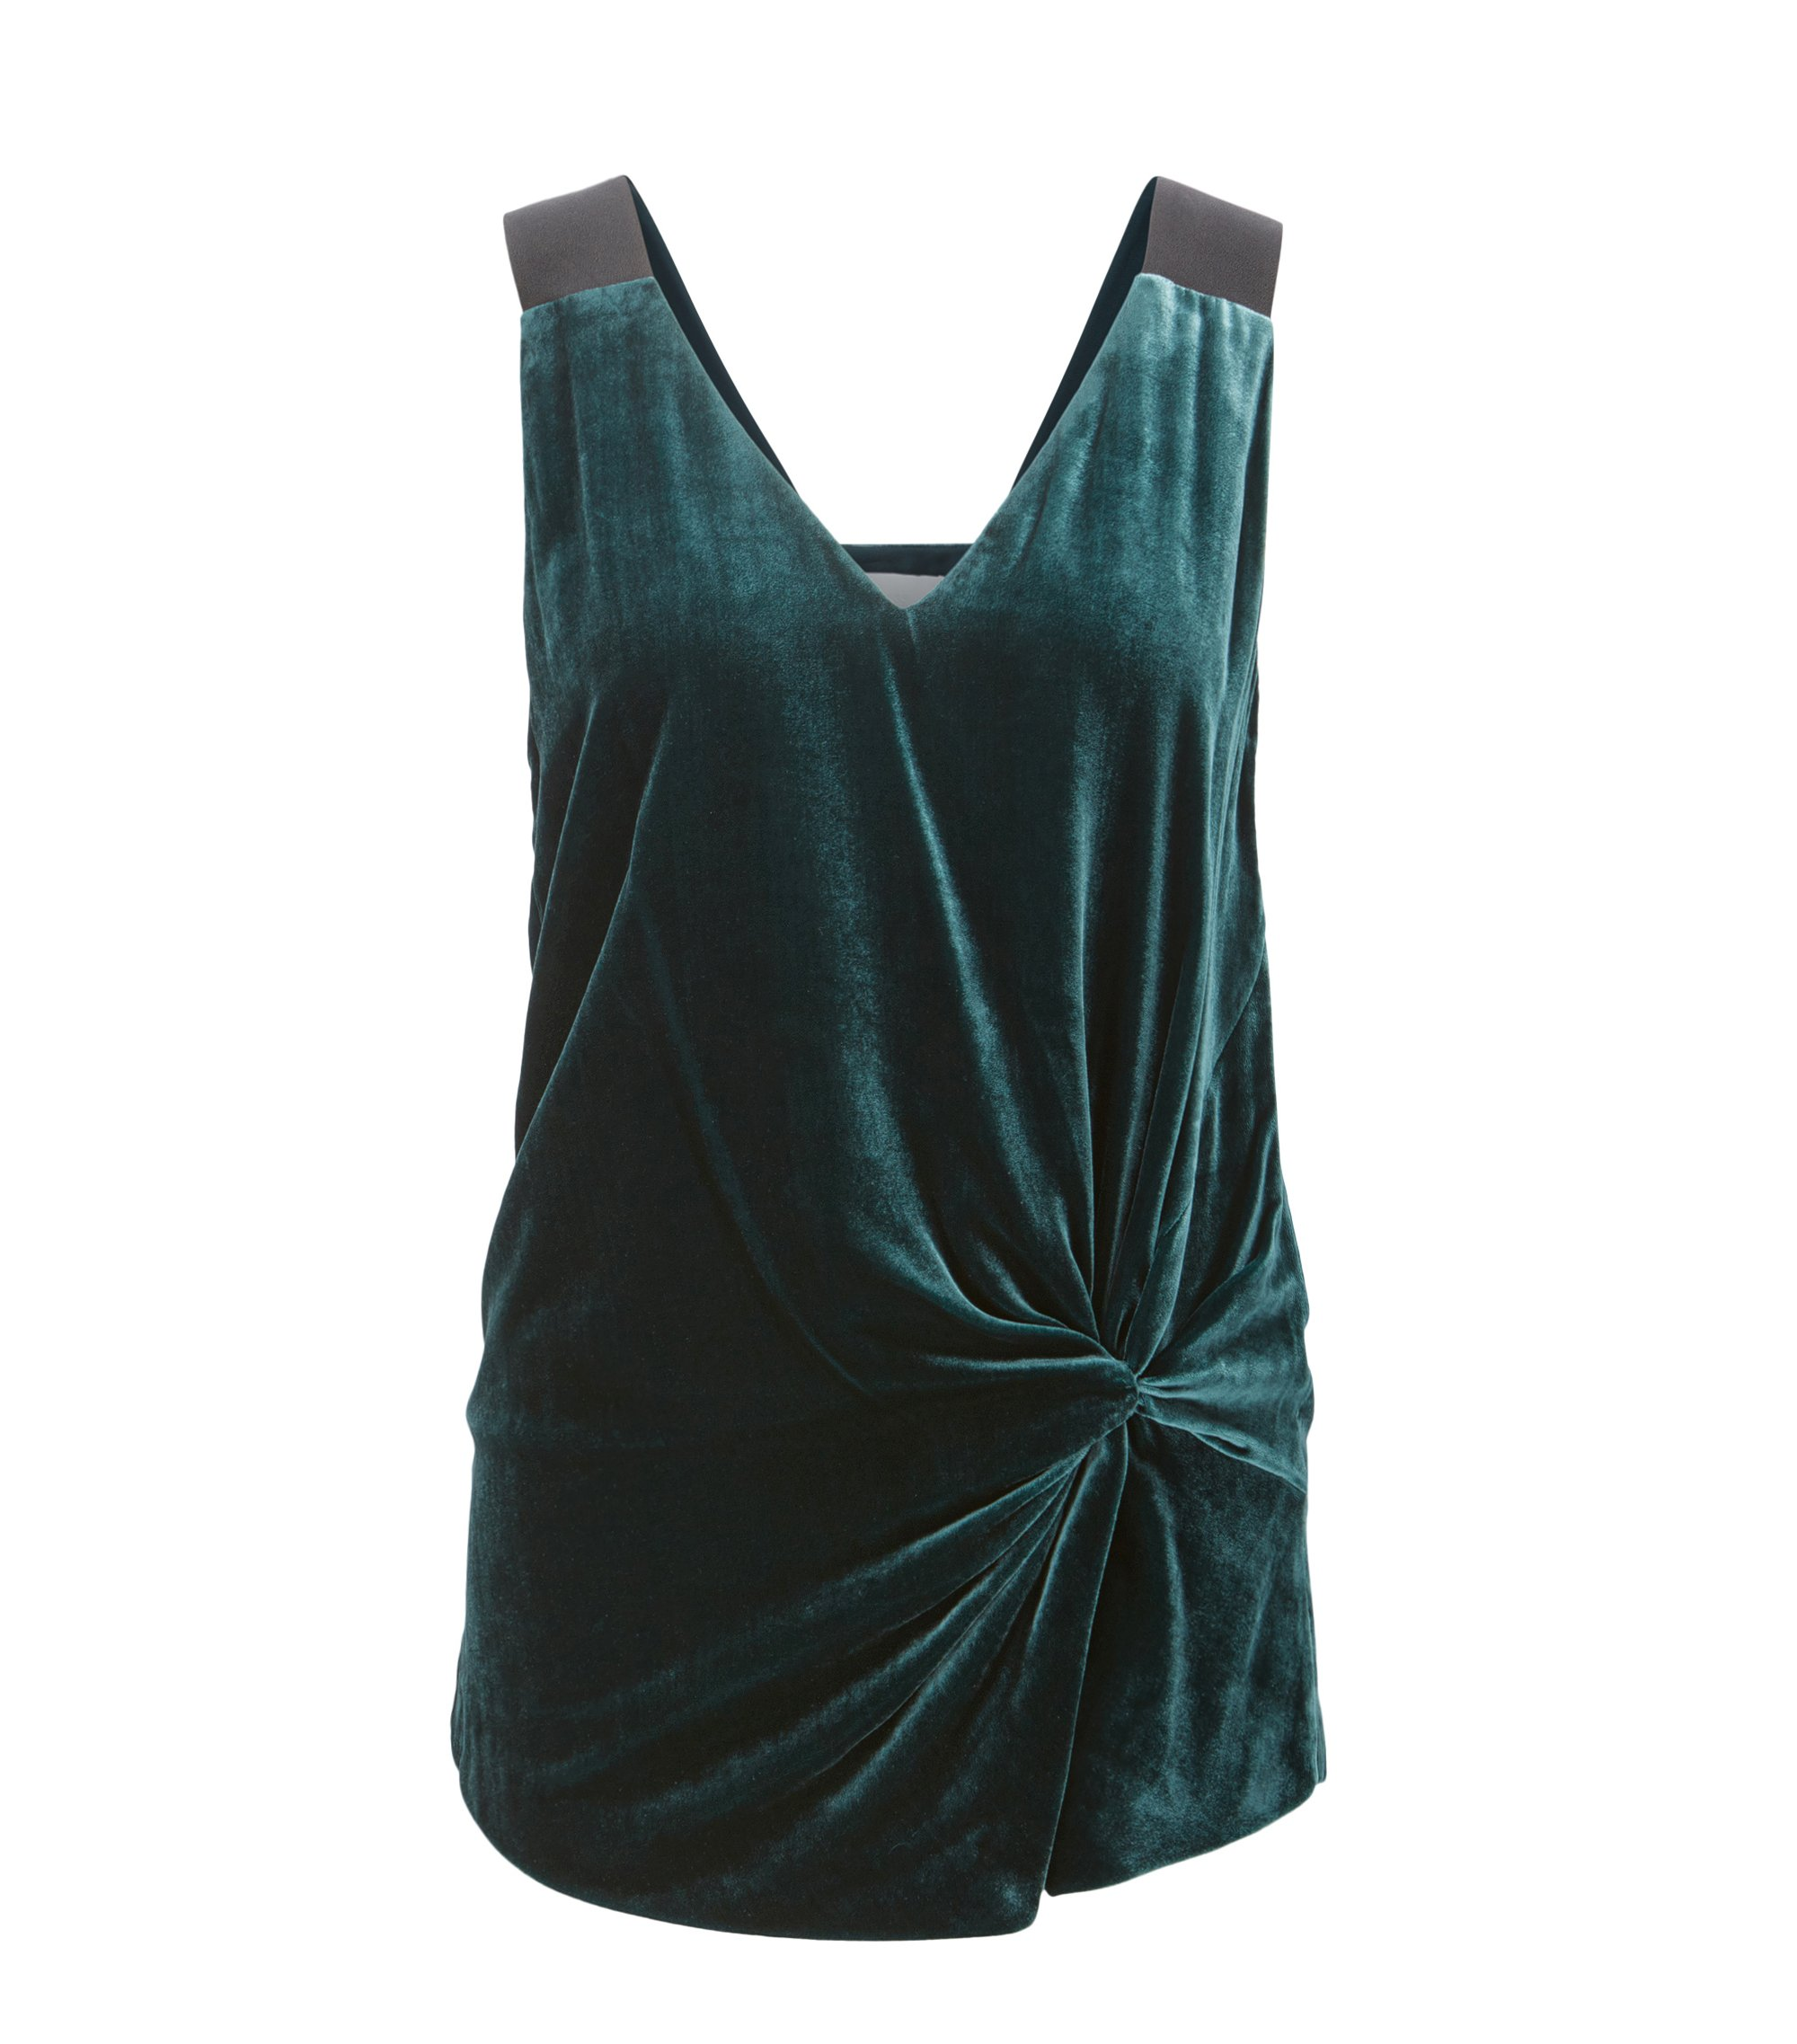 Knotted Velvet Top | Ikaria, Dark Green